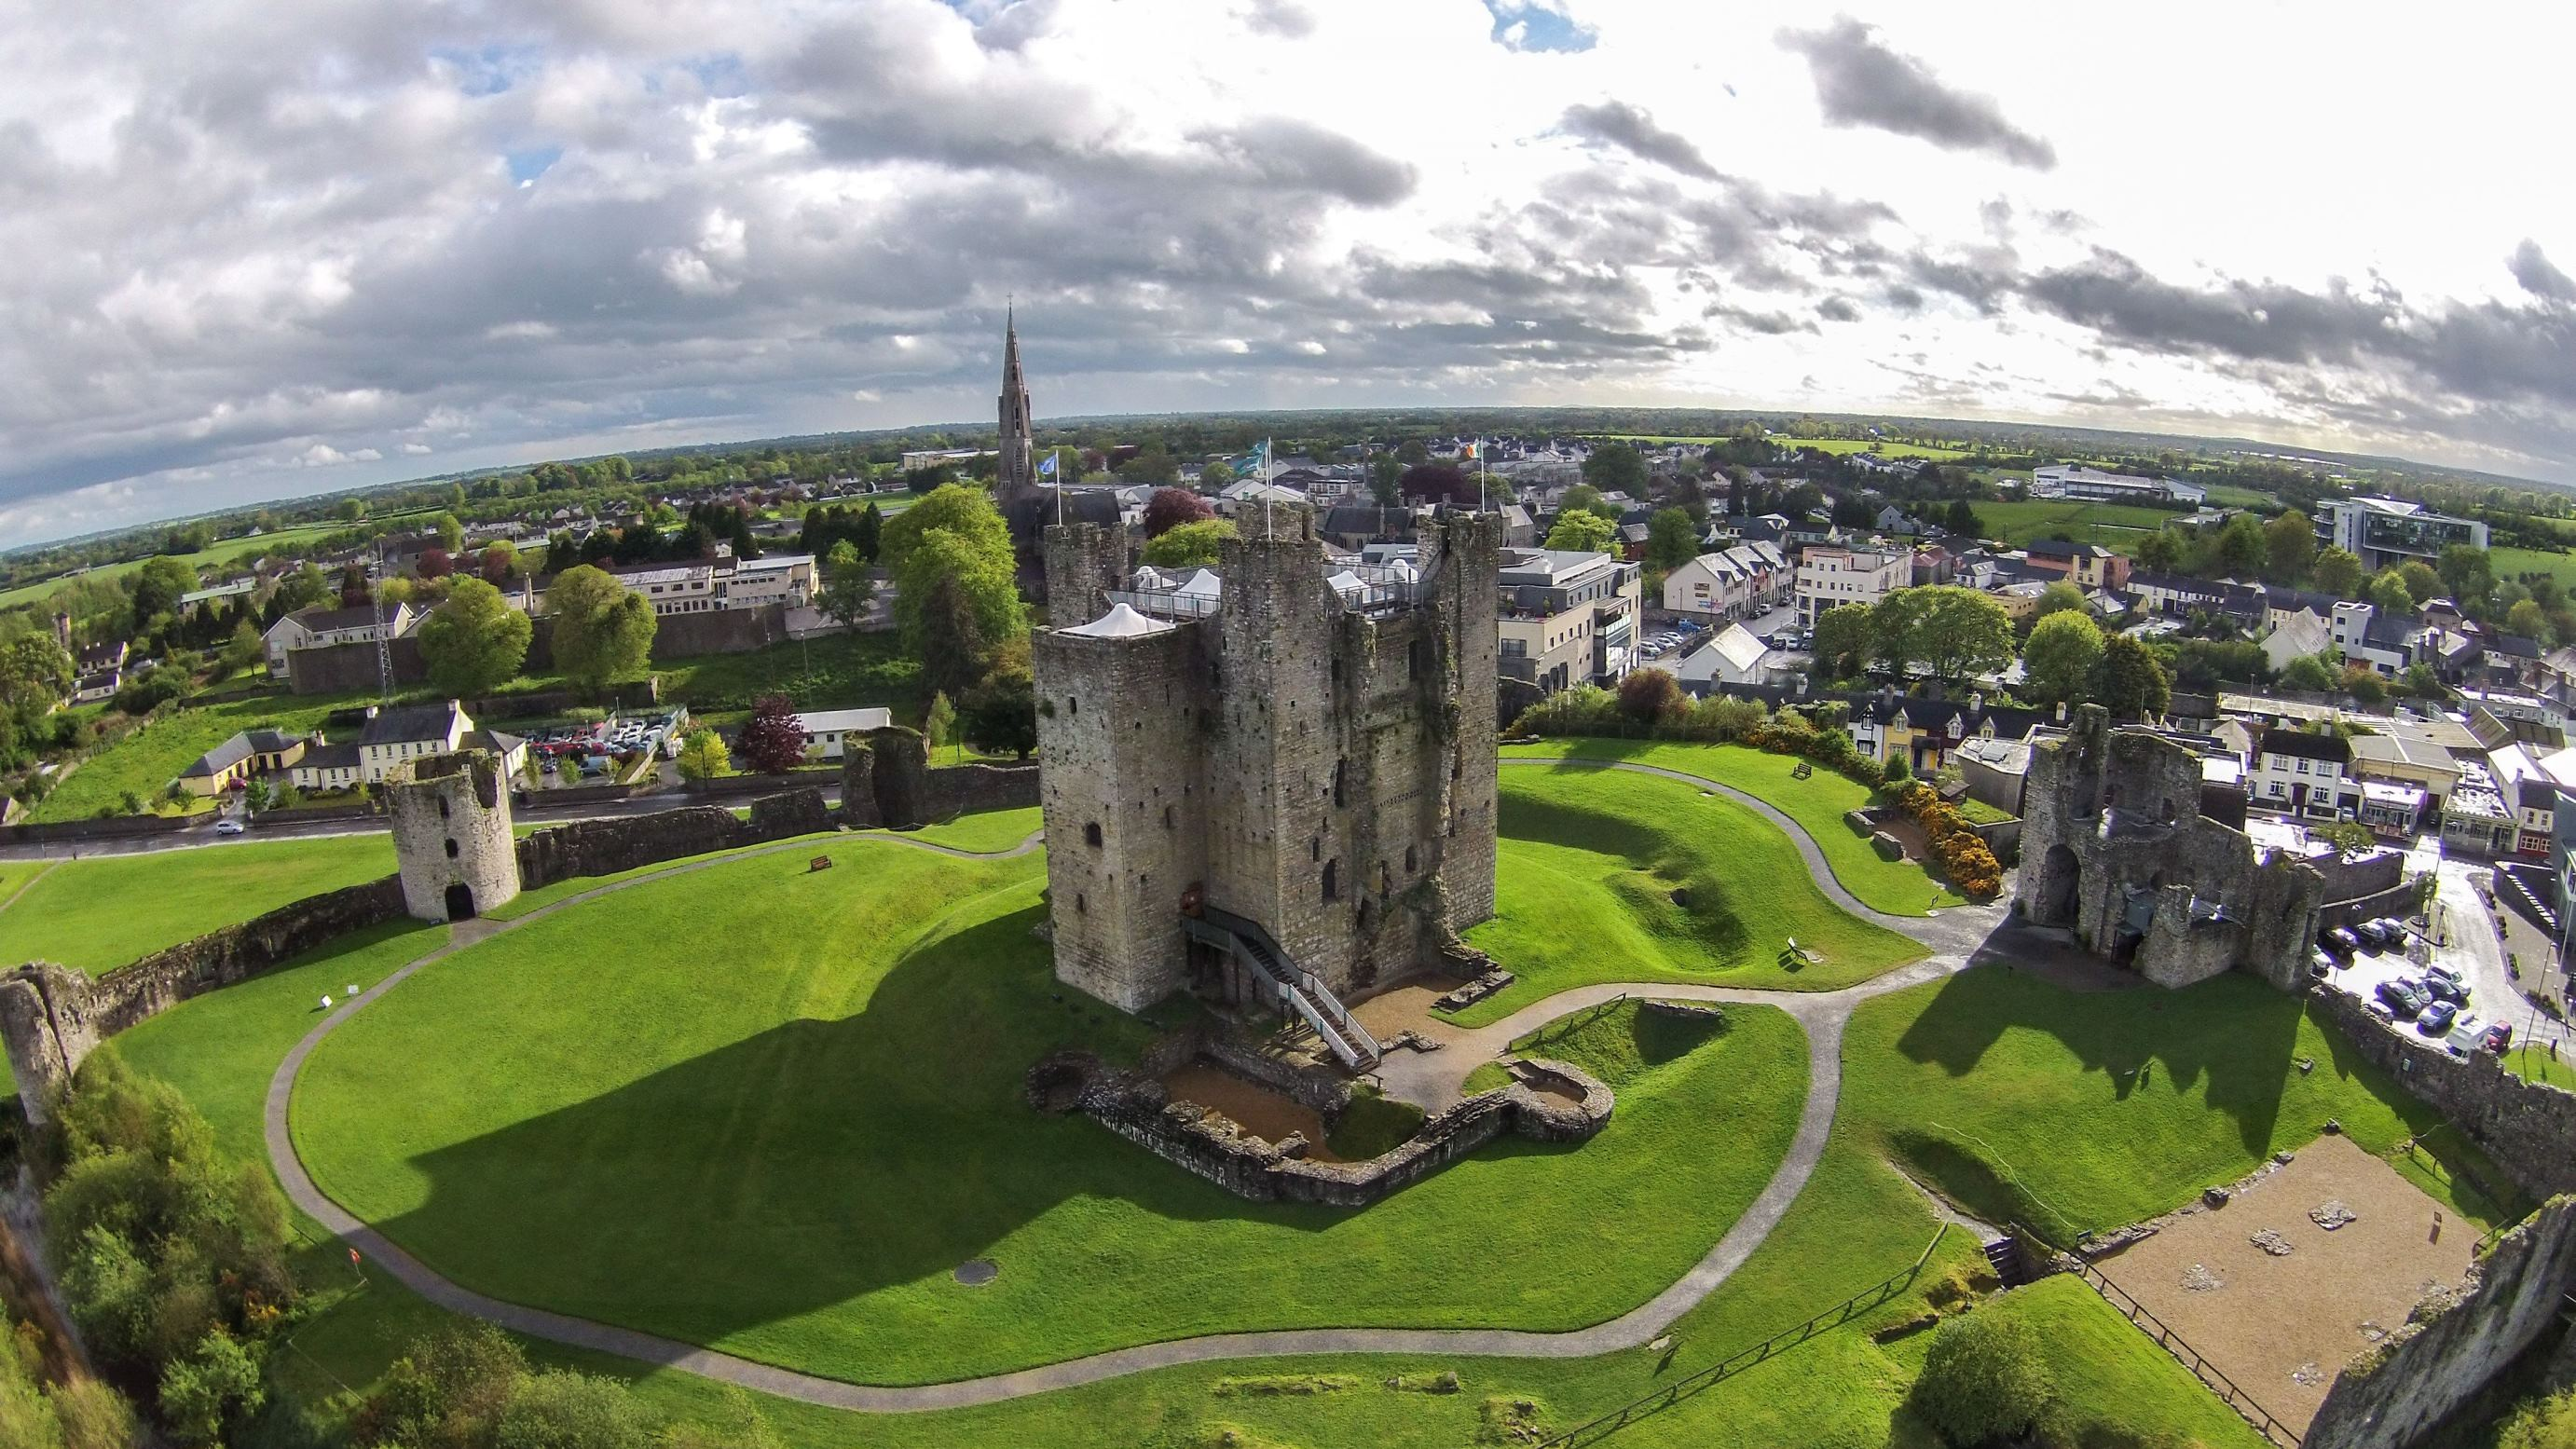 Slide 78 of 100: Bird's-eye-view images of Castle Ward (otherwise known as Winterfell Castle in Game of Thrones) alongside Trim Castle can be seen. Meanwhile, drone images of hills, coastlines and beaches can also be seen.